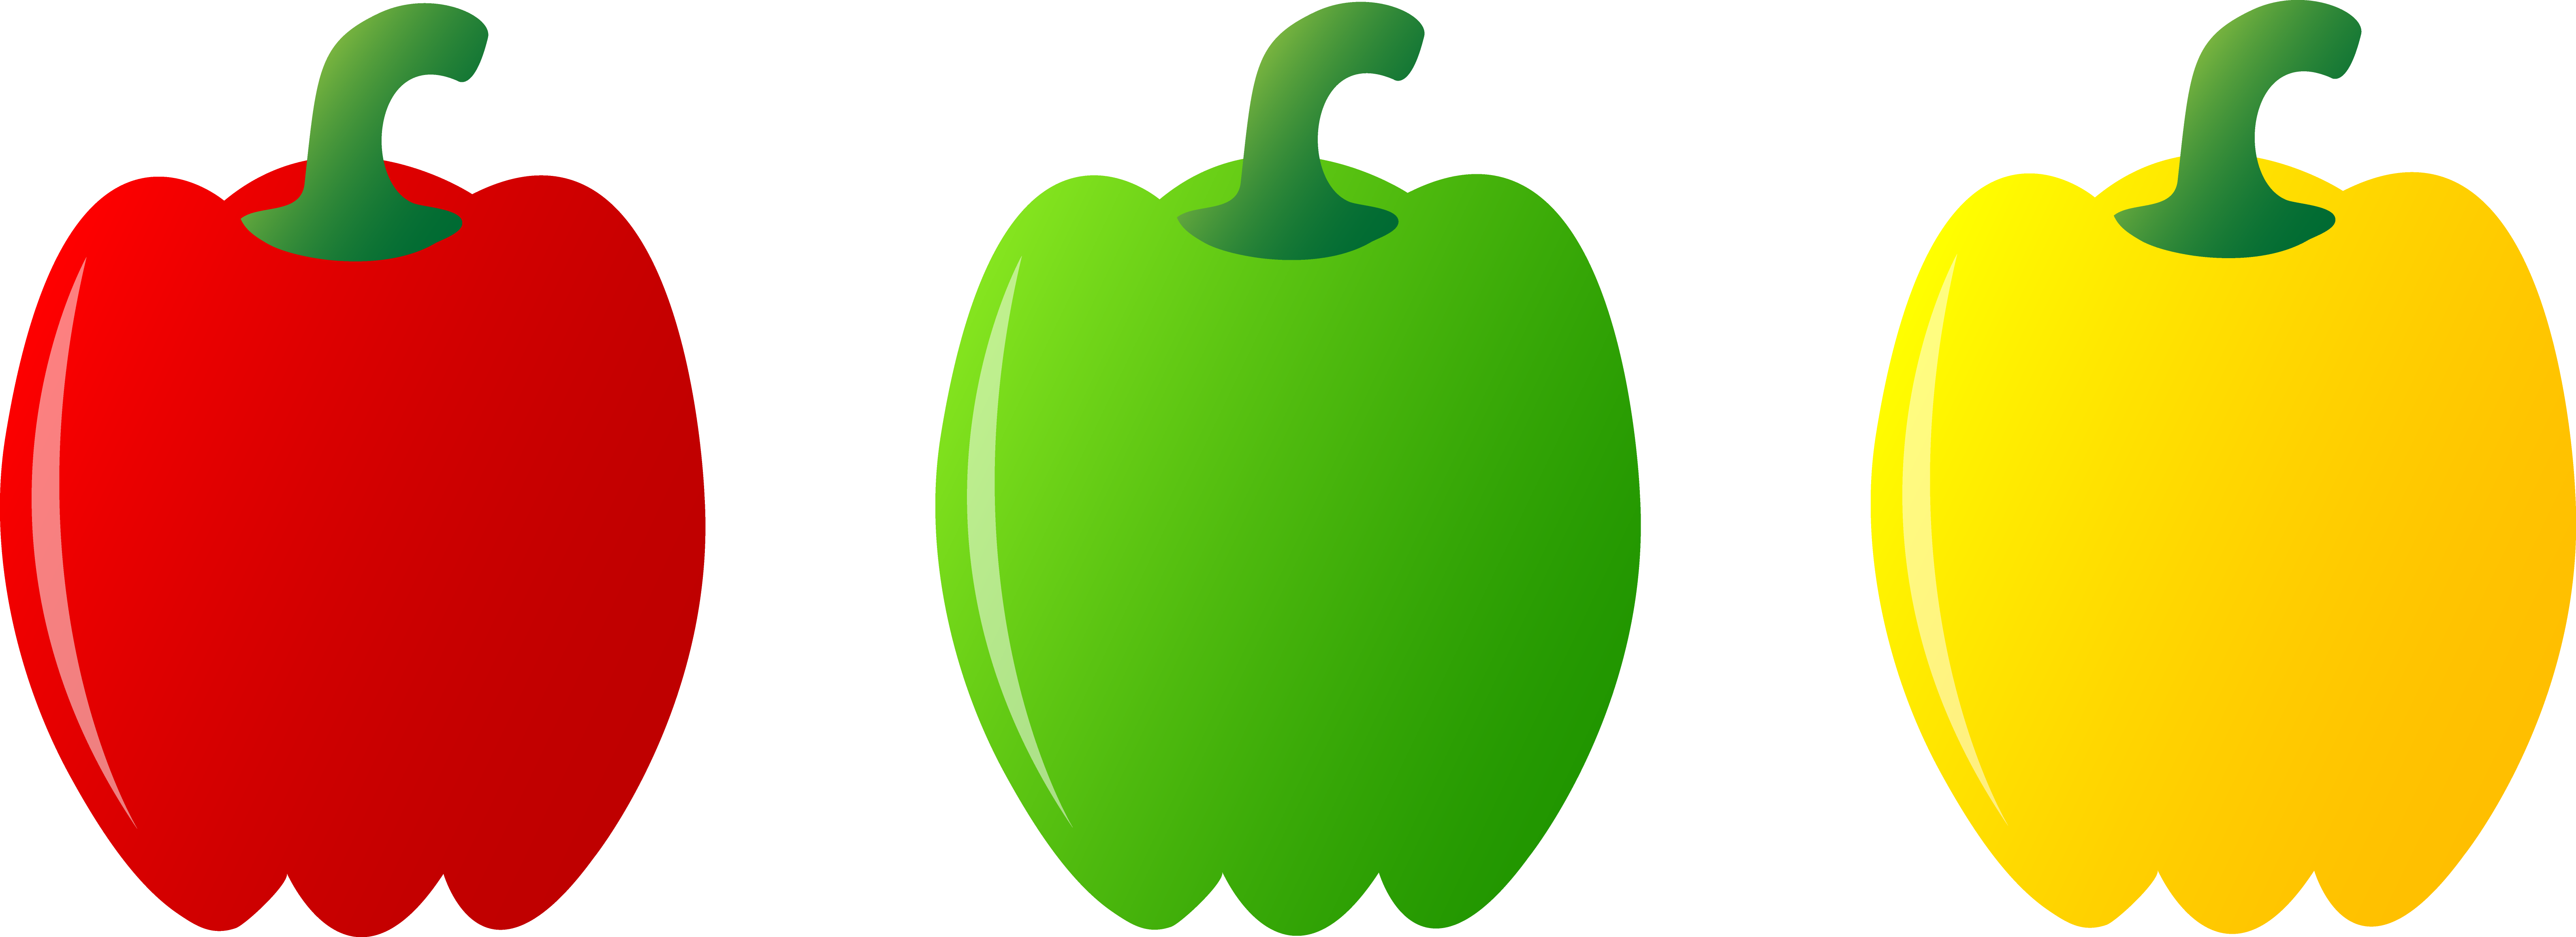 Free Peppers Cliparts, Download Free Clip Art, Free Clip Art.